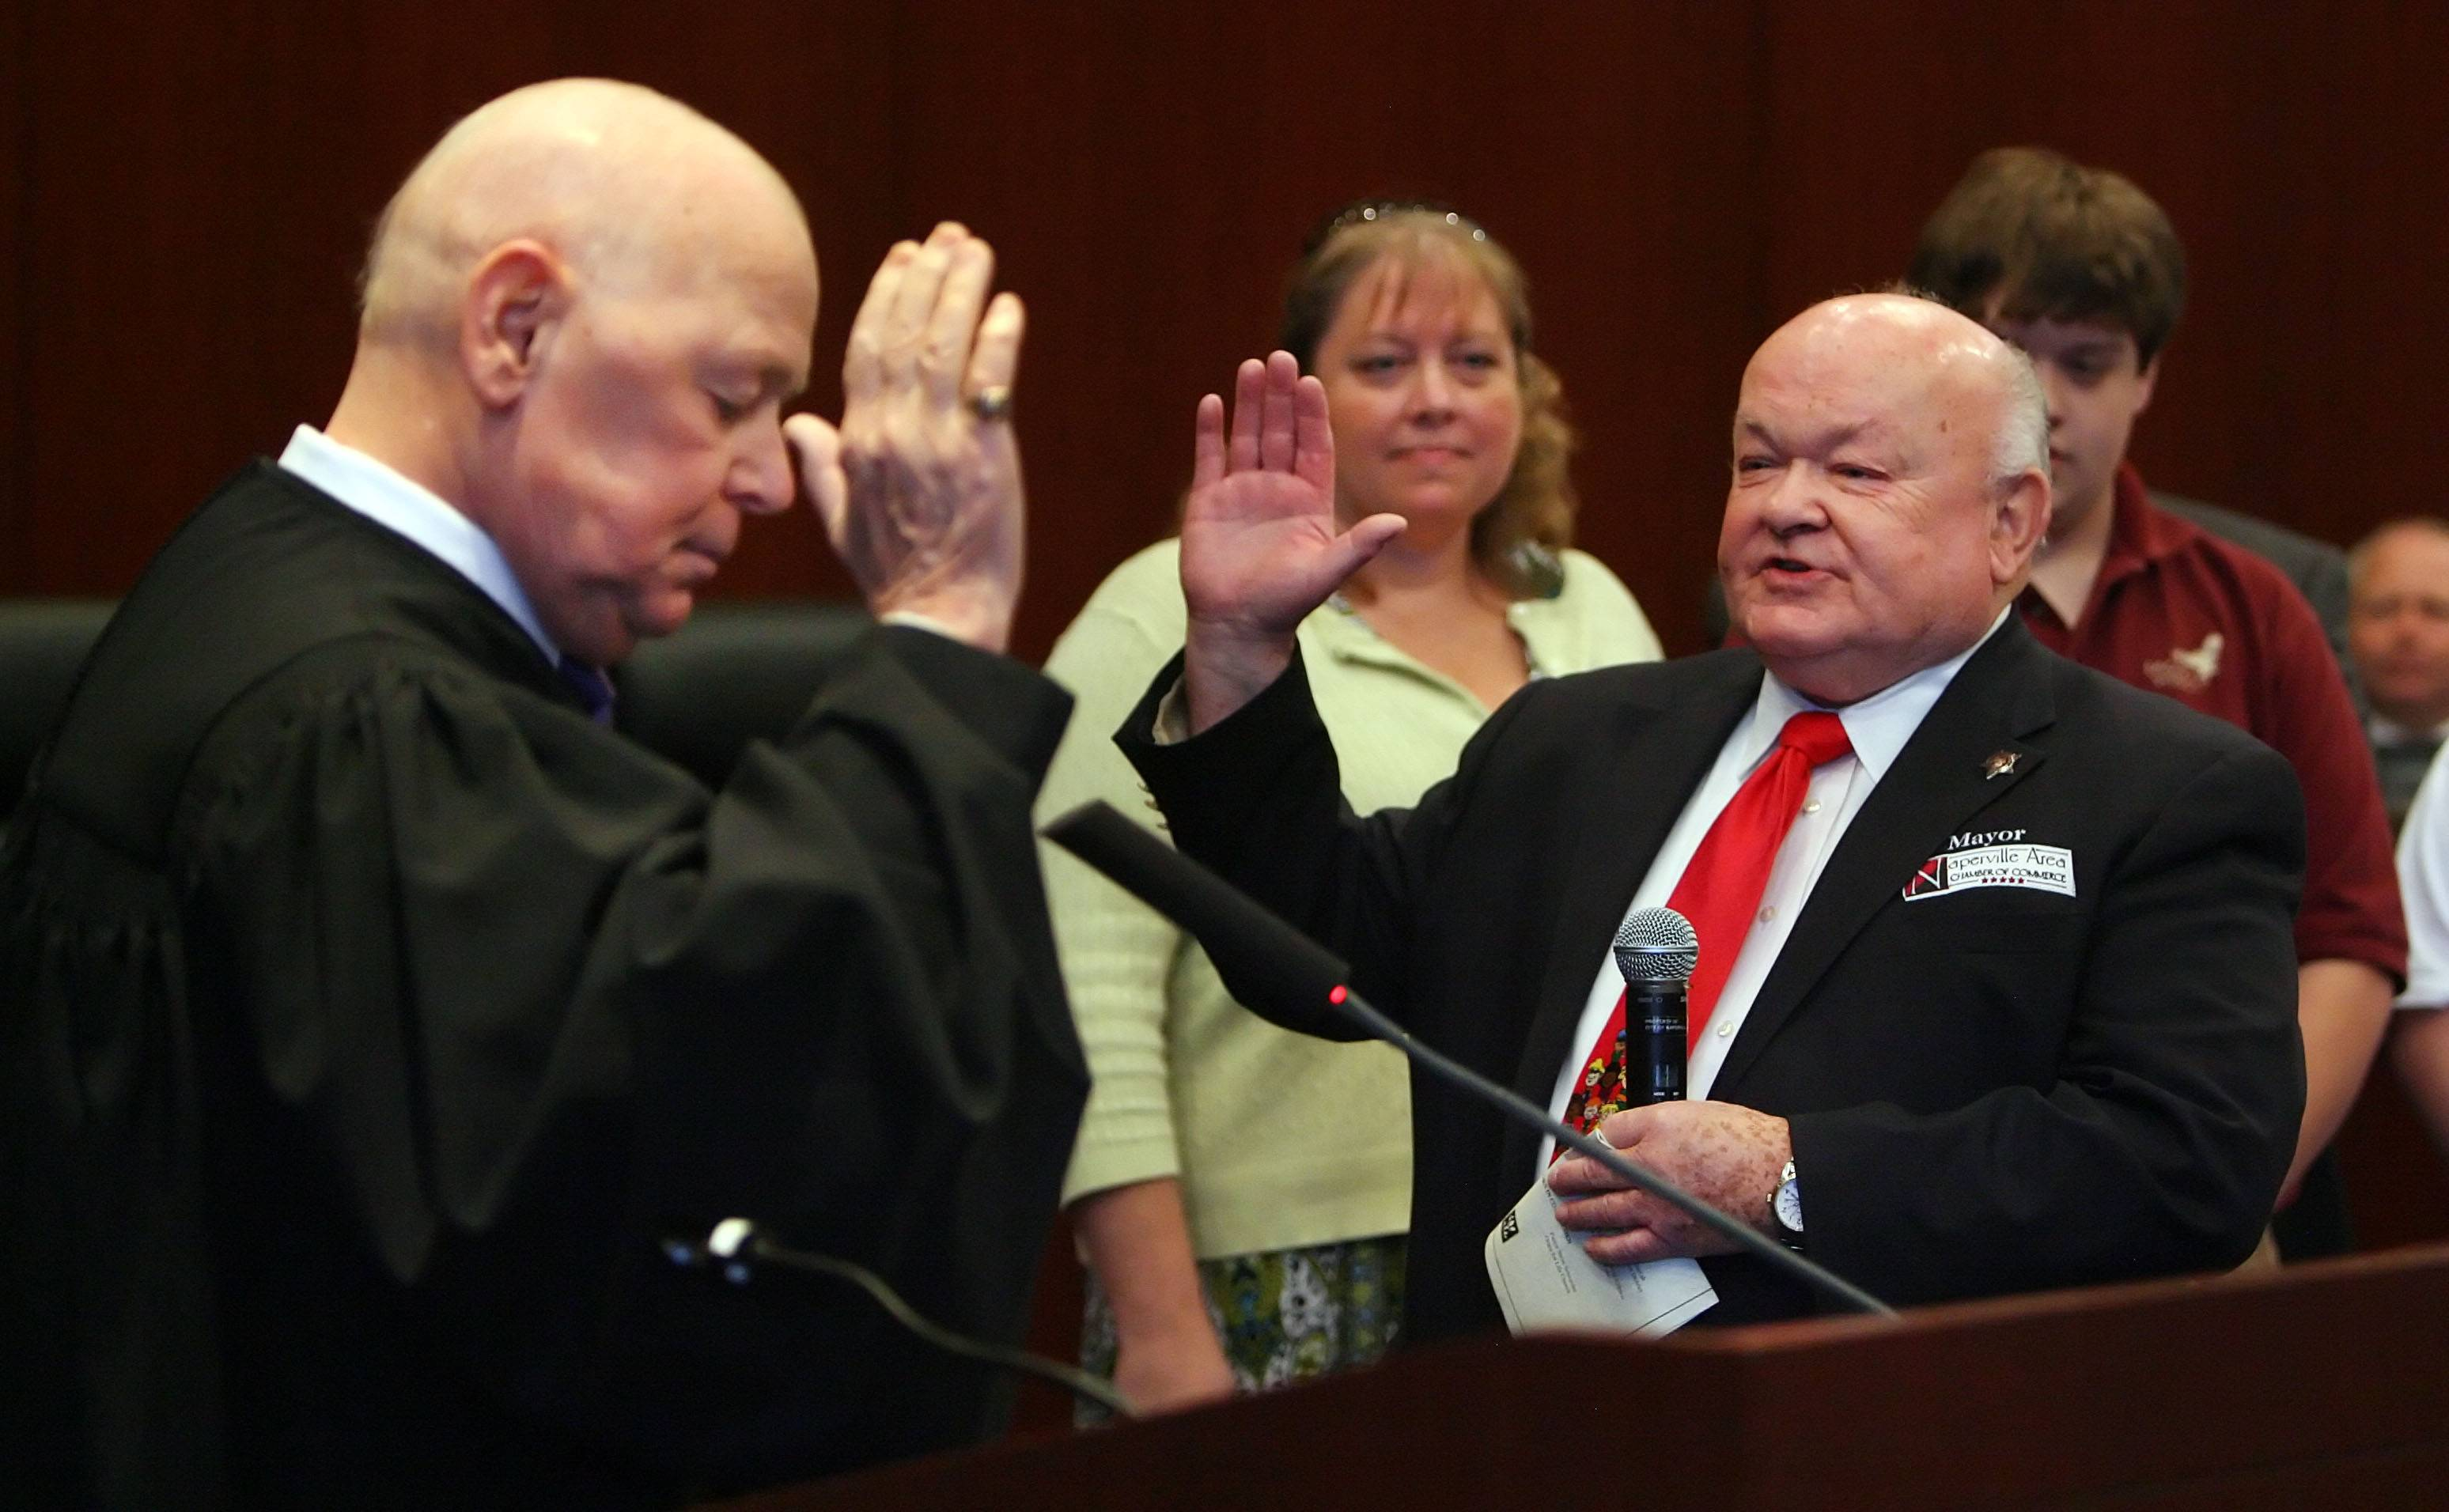 A familiar sight: George Pradel takes the oath of office. He served five terms as Naperville mayor, from 1995 to 2015.